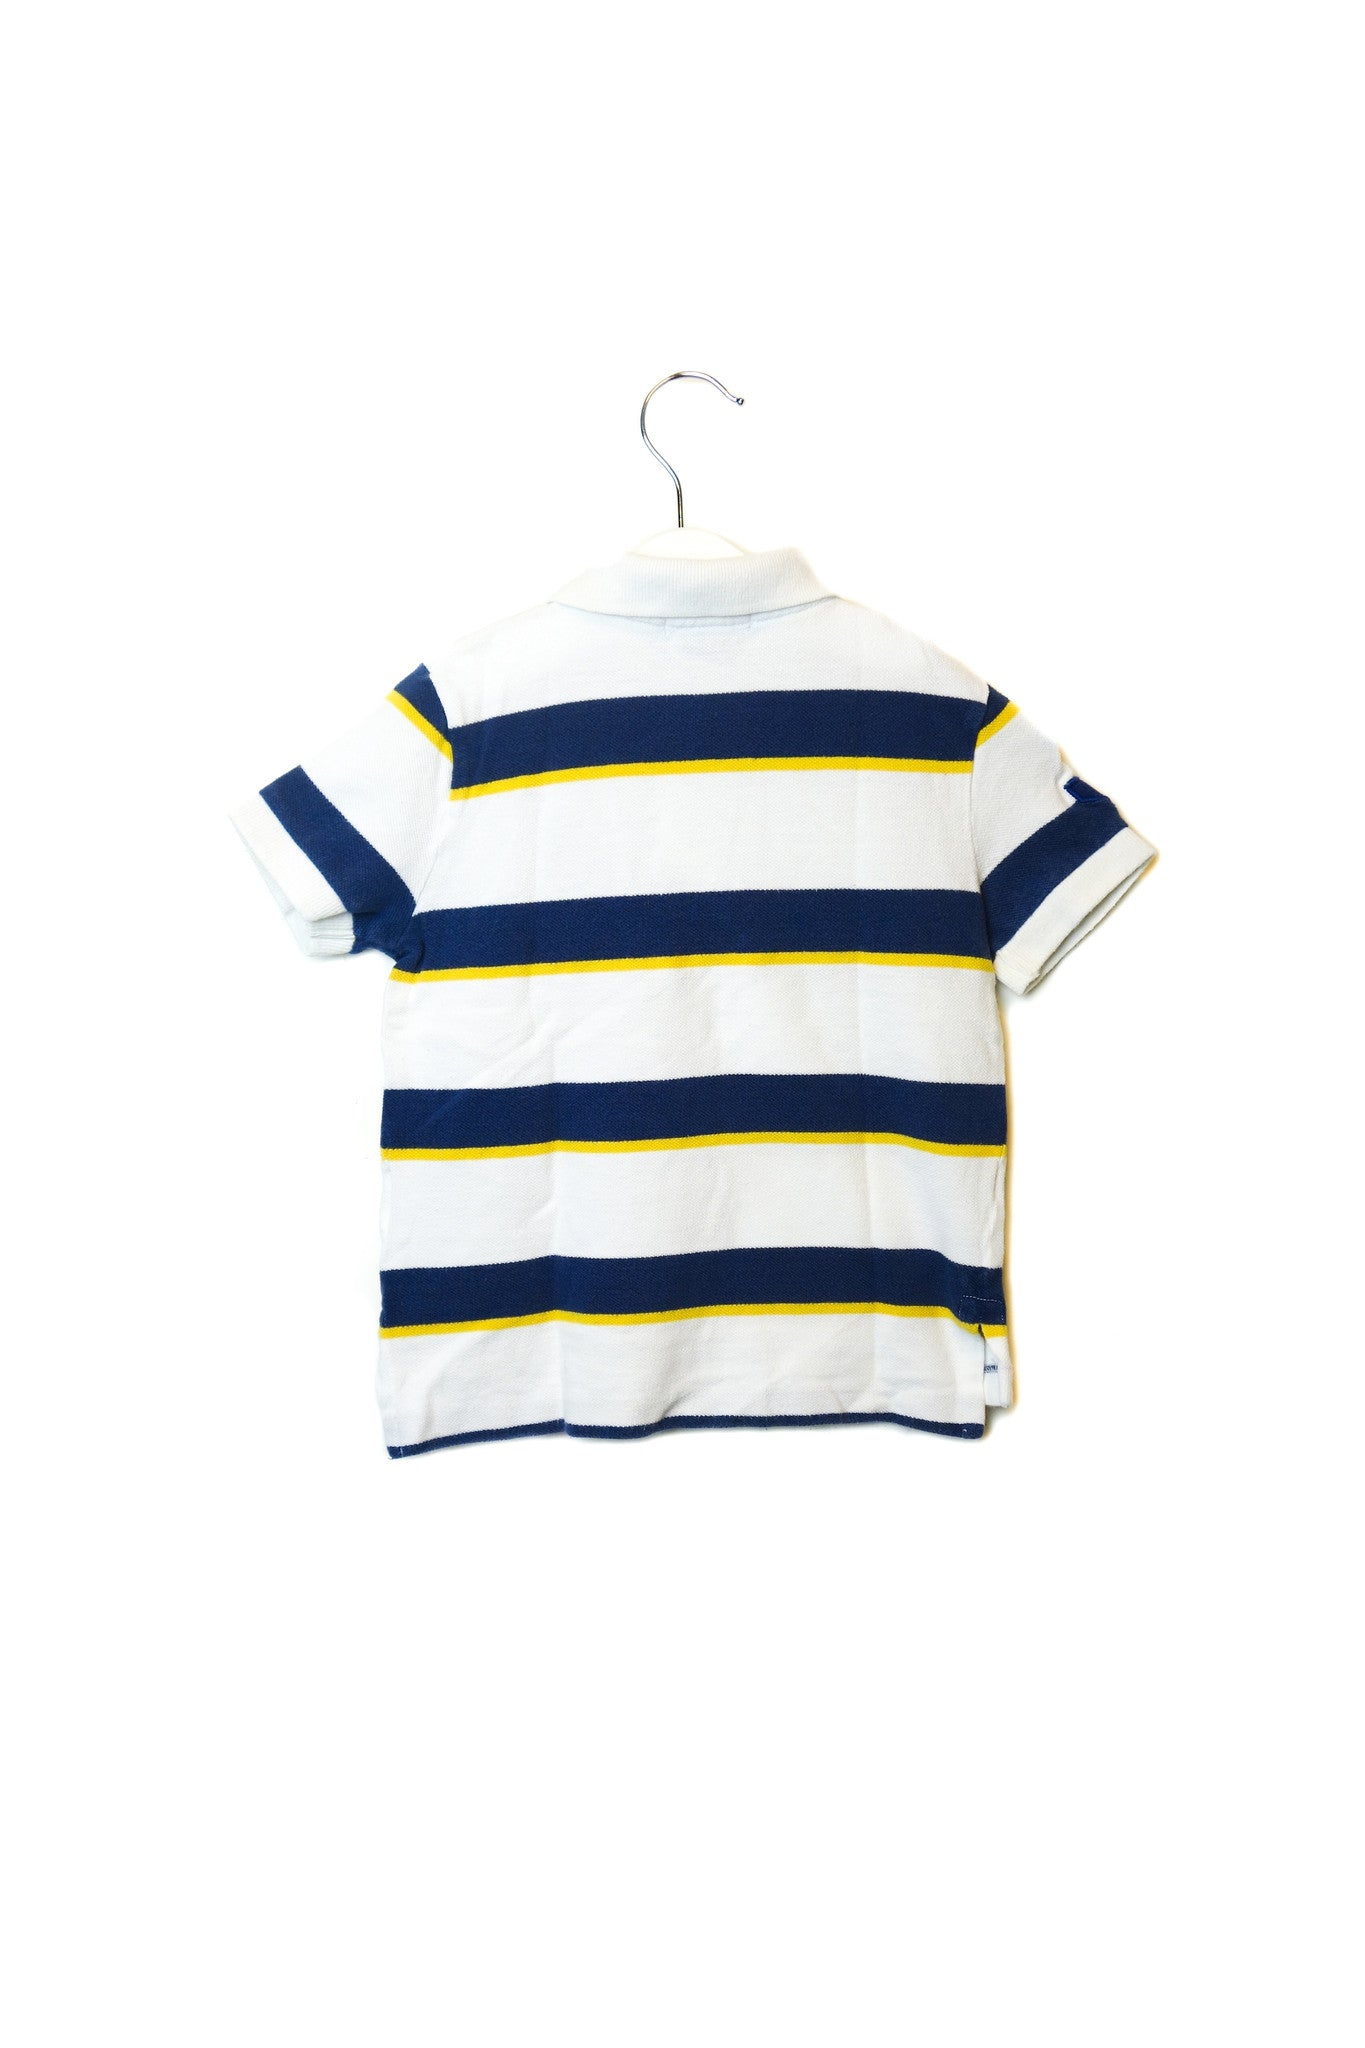 10001772 Polo Ralph Lauren Kids~Polo 2T at Retykle